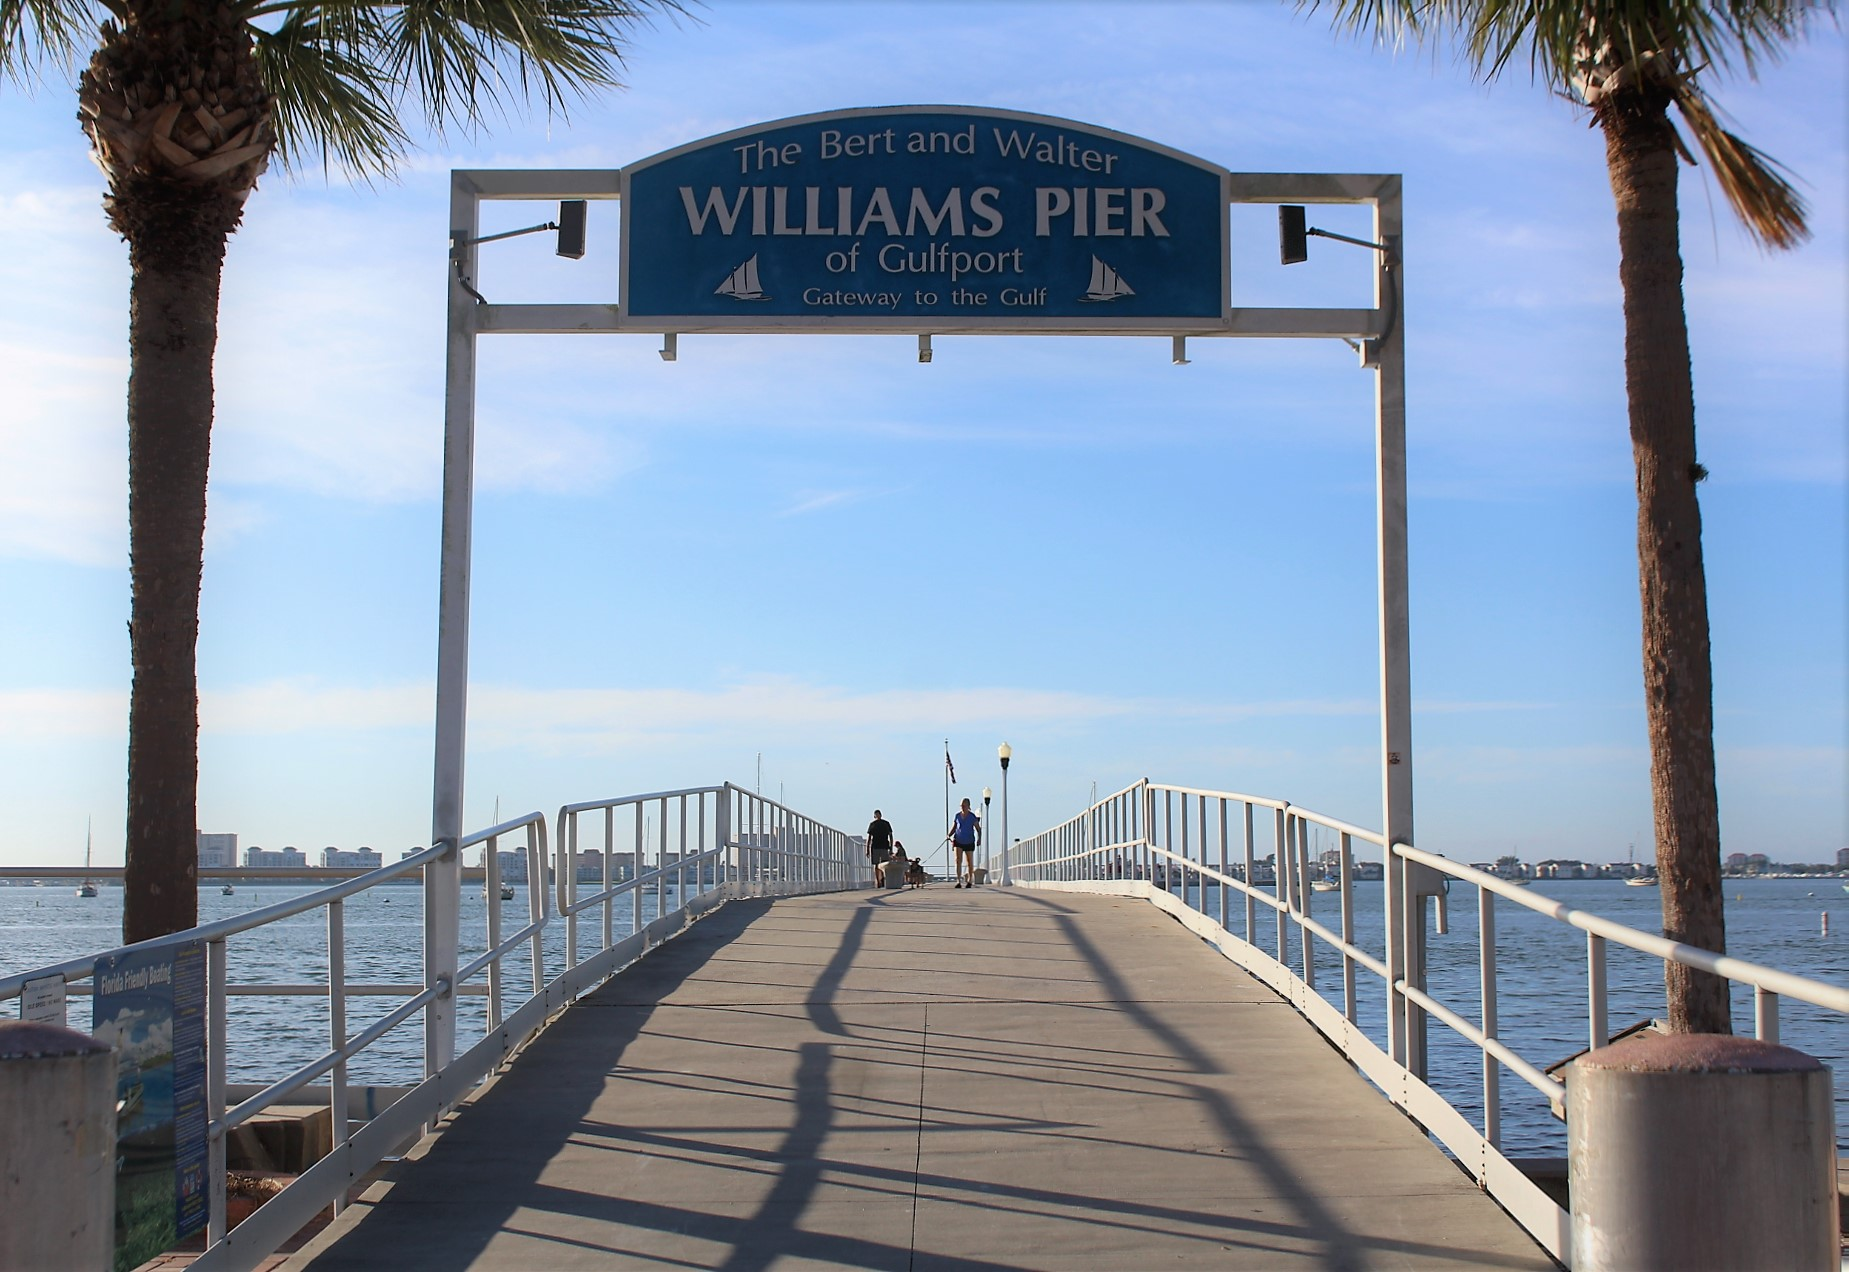 The entrance to Williams Pier in Gulfport Florida